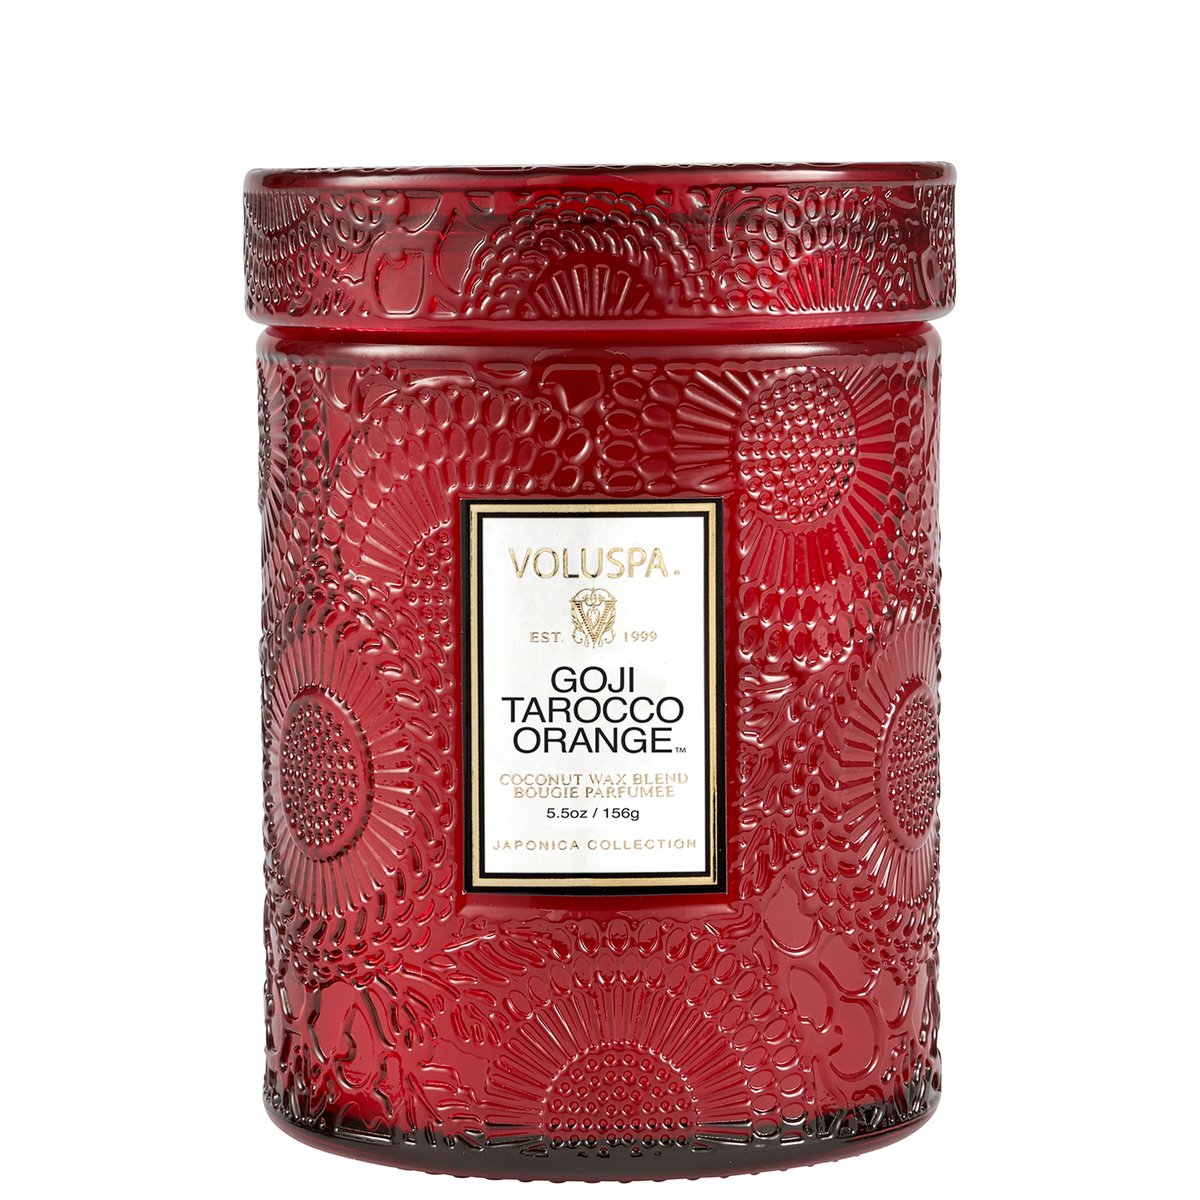 Goji & Tarocco Orange Small Jar Candle